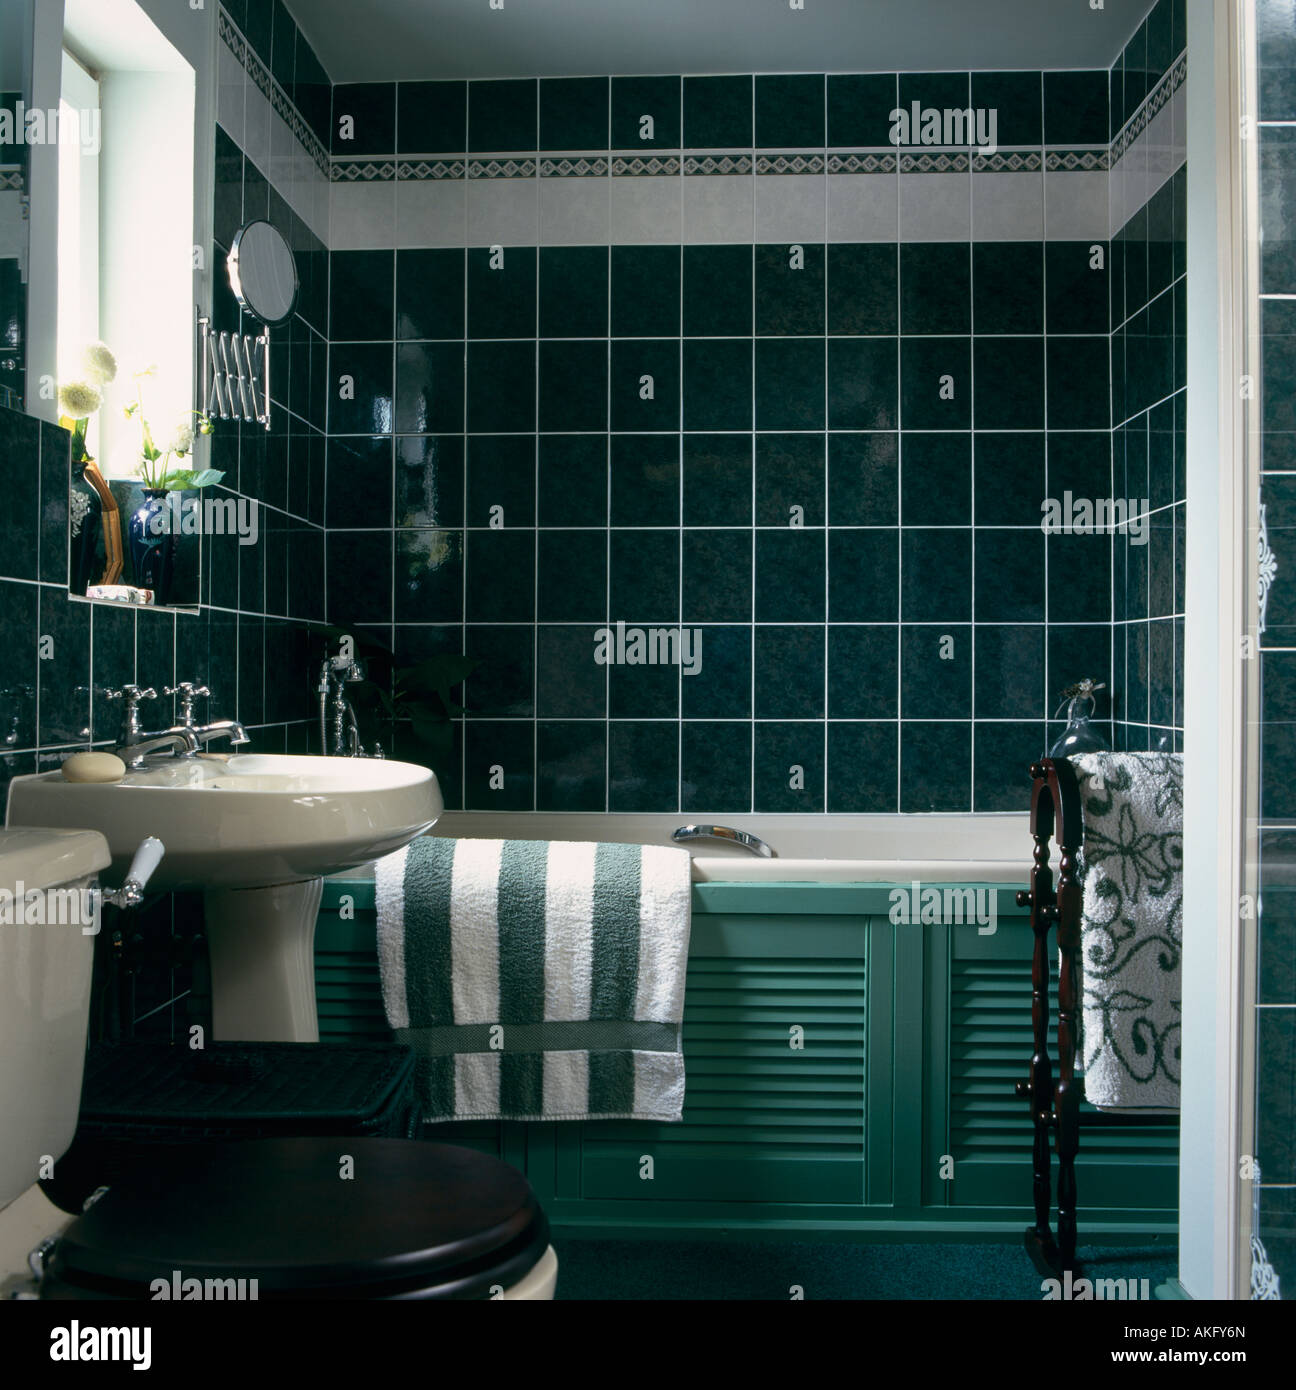 dark green bathroom tiles green striped towel on white bath with green panelling in 18047 | green striped towel on white bath with green panelling in bathroom AKFY6N